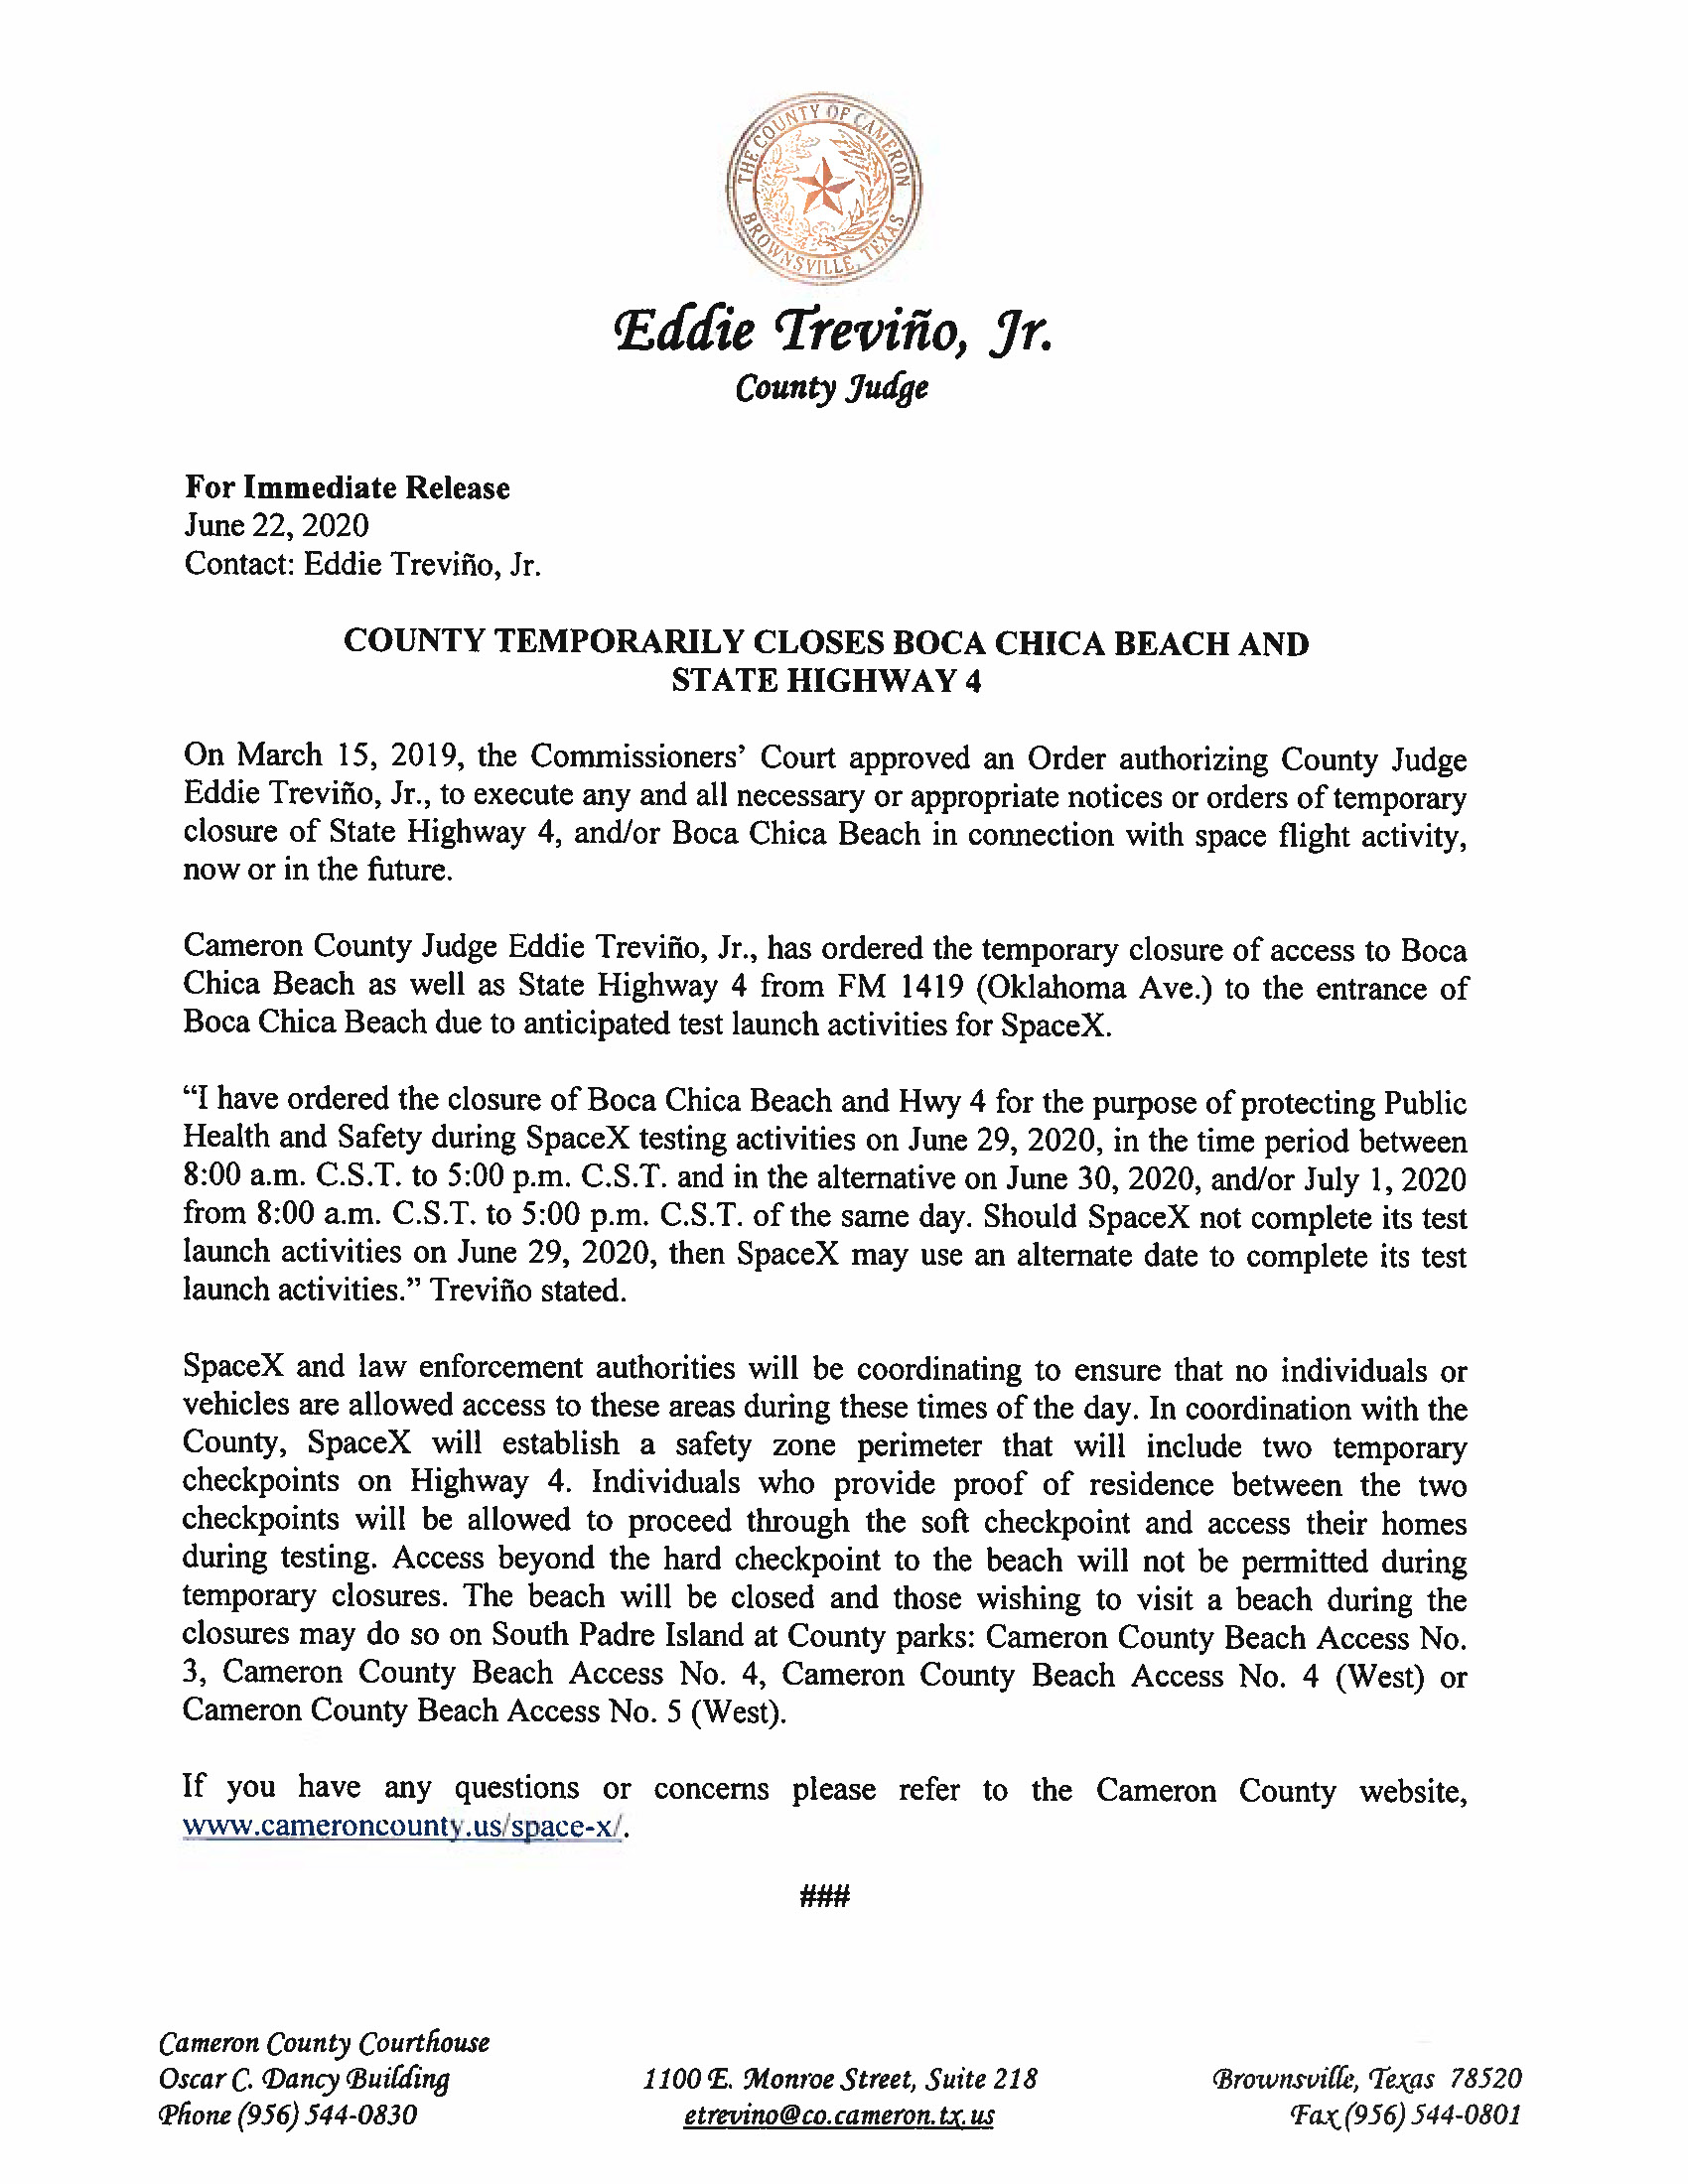 Press Release In Englilsh And Spanish.06.29.20 Page 1